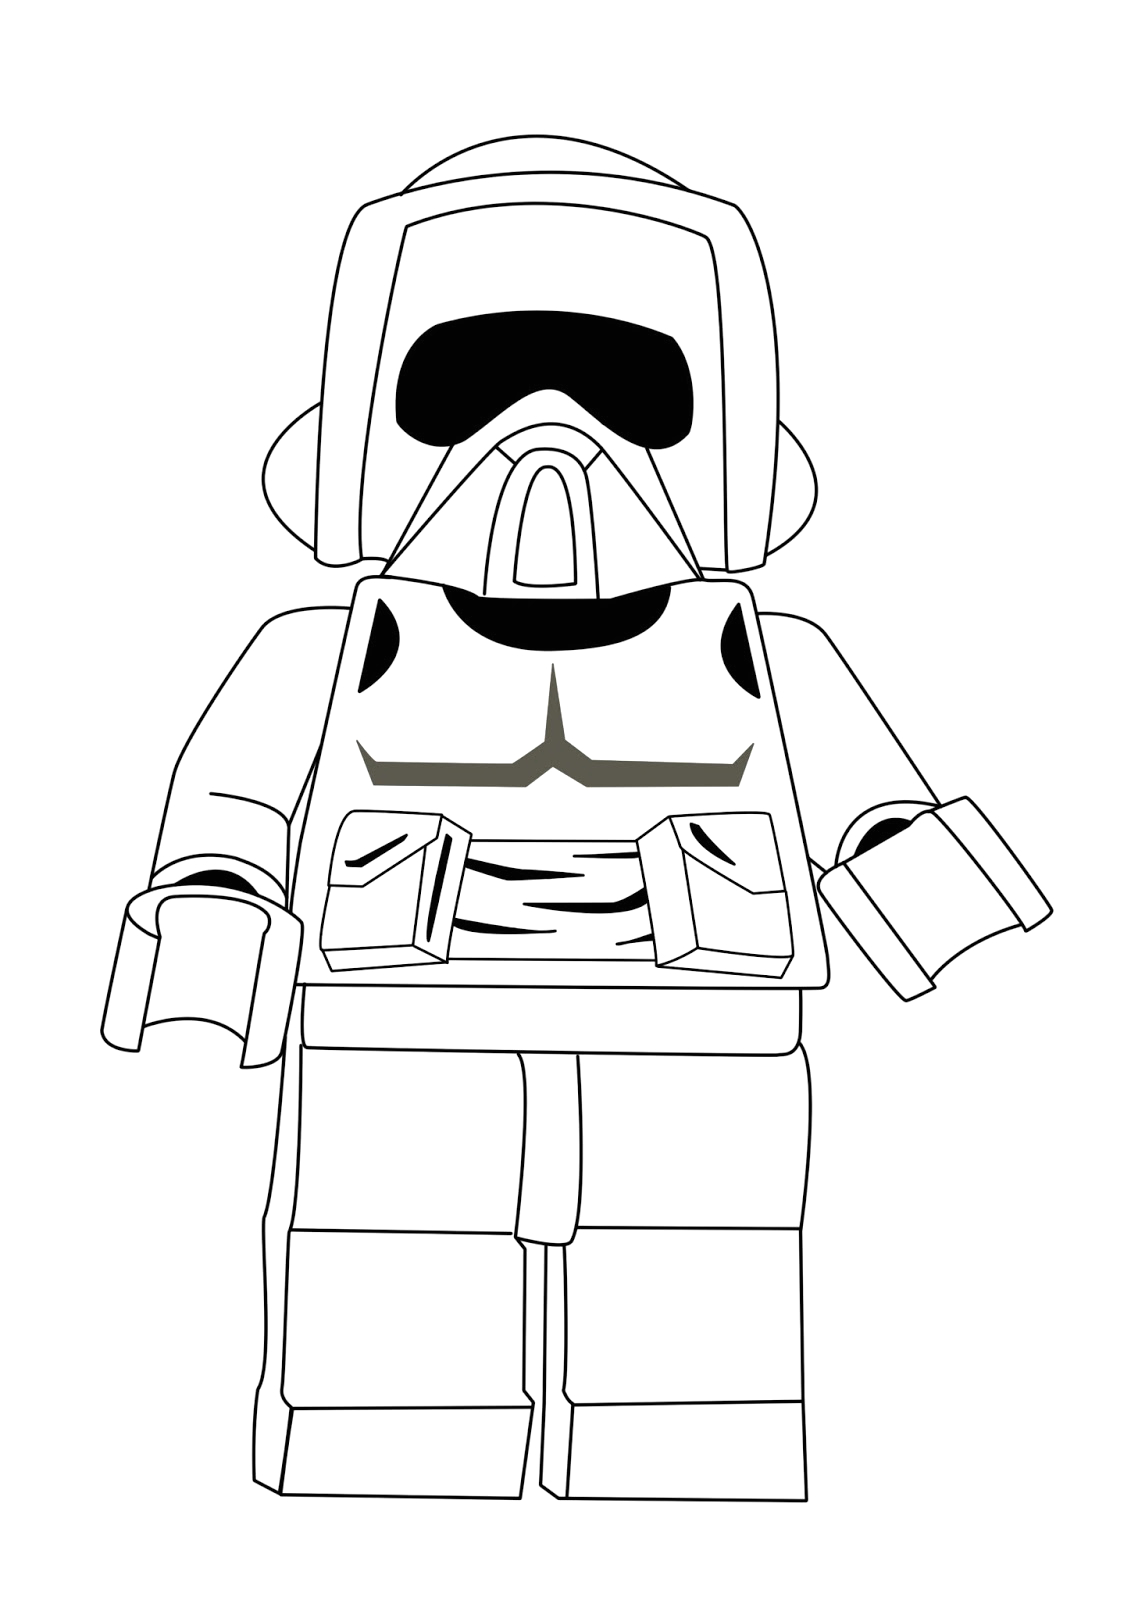 Free Printable Lego Star Wars Coloring Pages Lego Star Wars Coloring Pages Best Coloring Pages for Kids